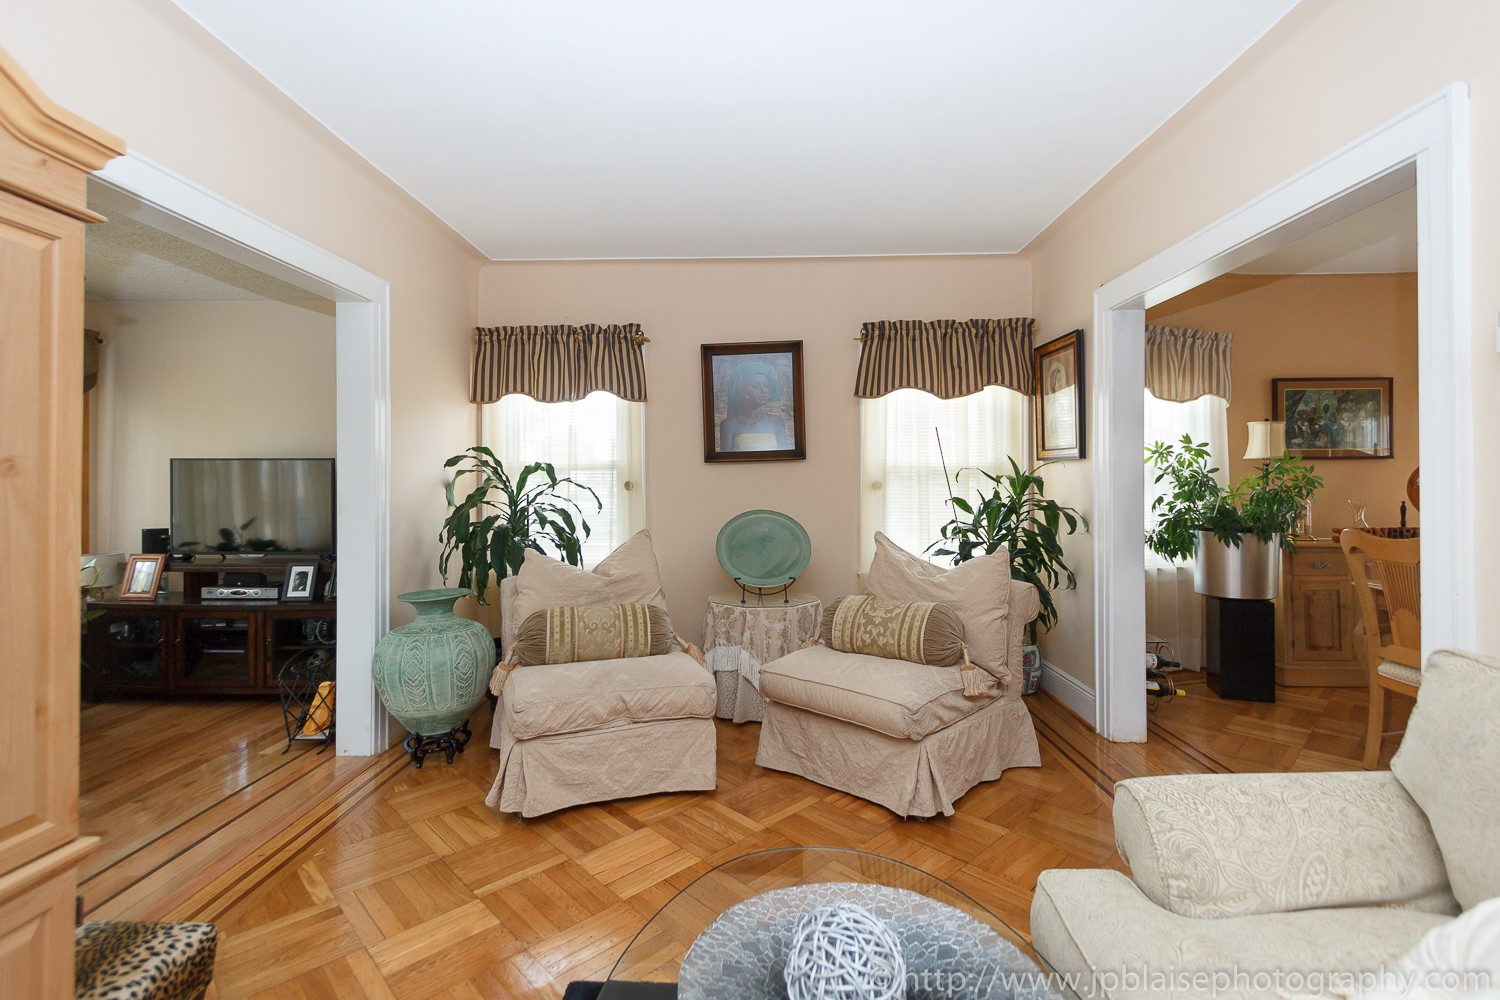 New york real estate apartment photographer room to rent in queens village house